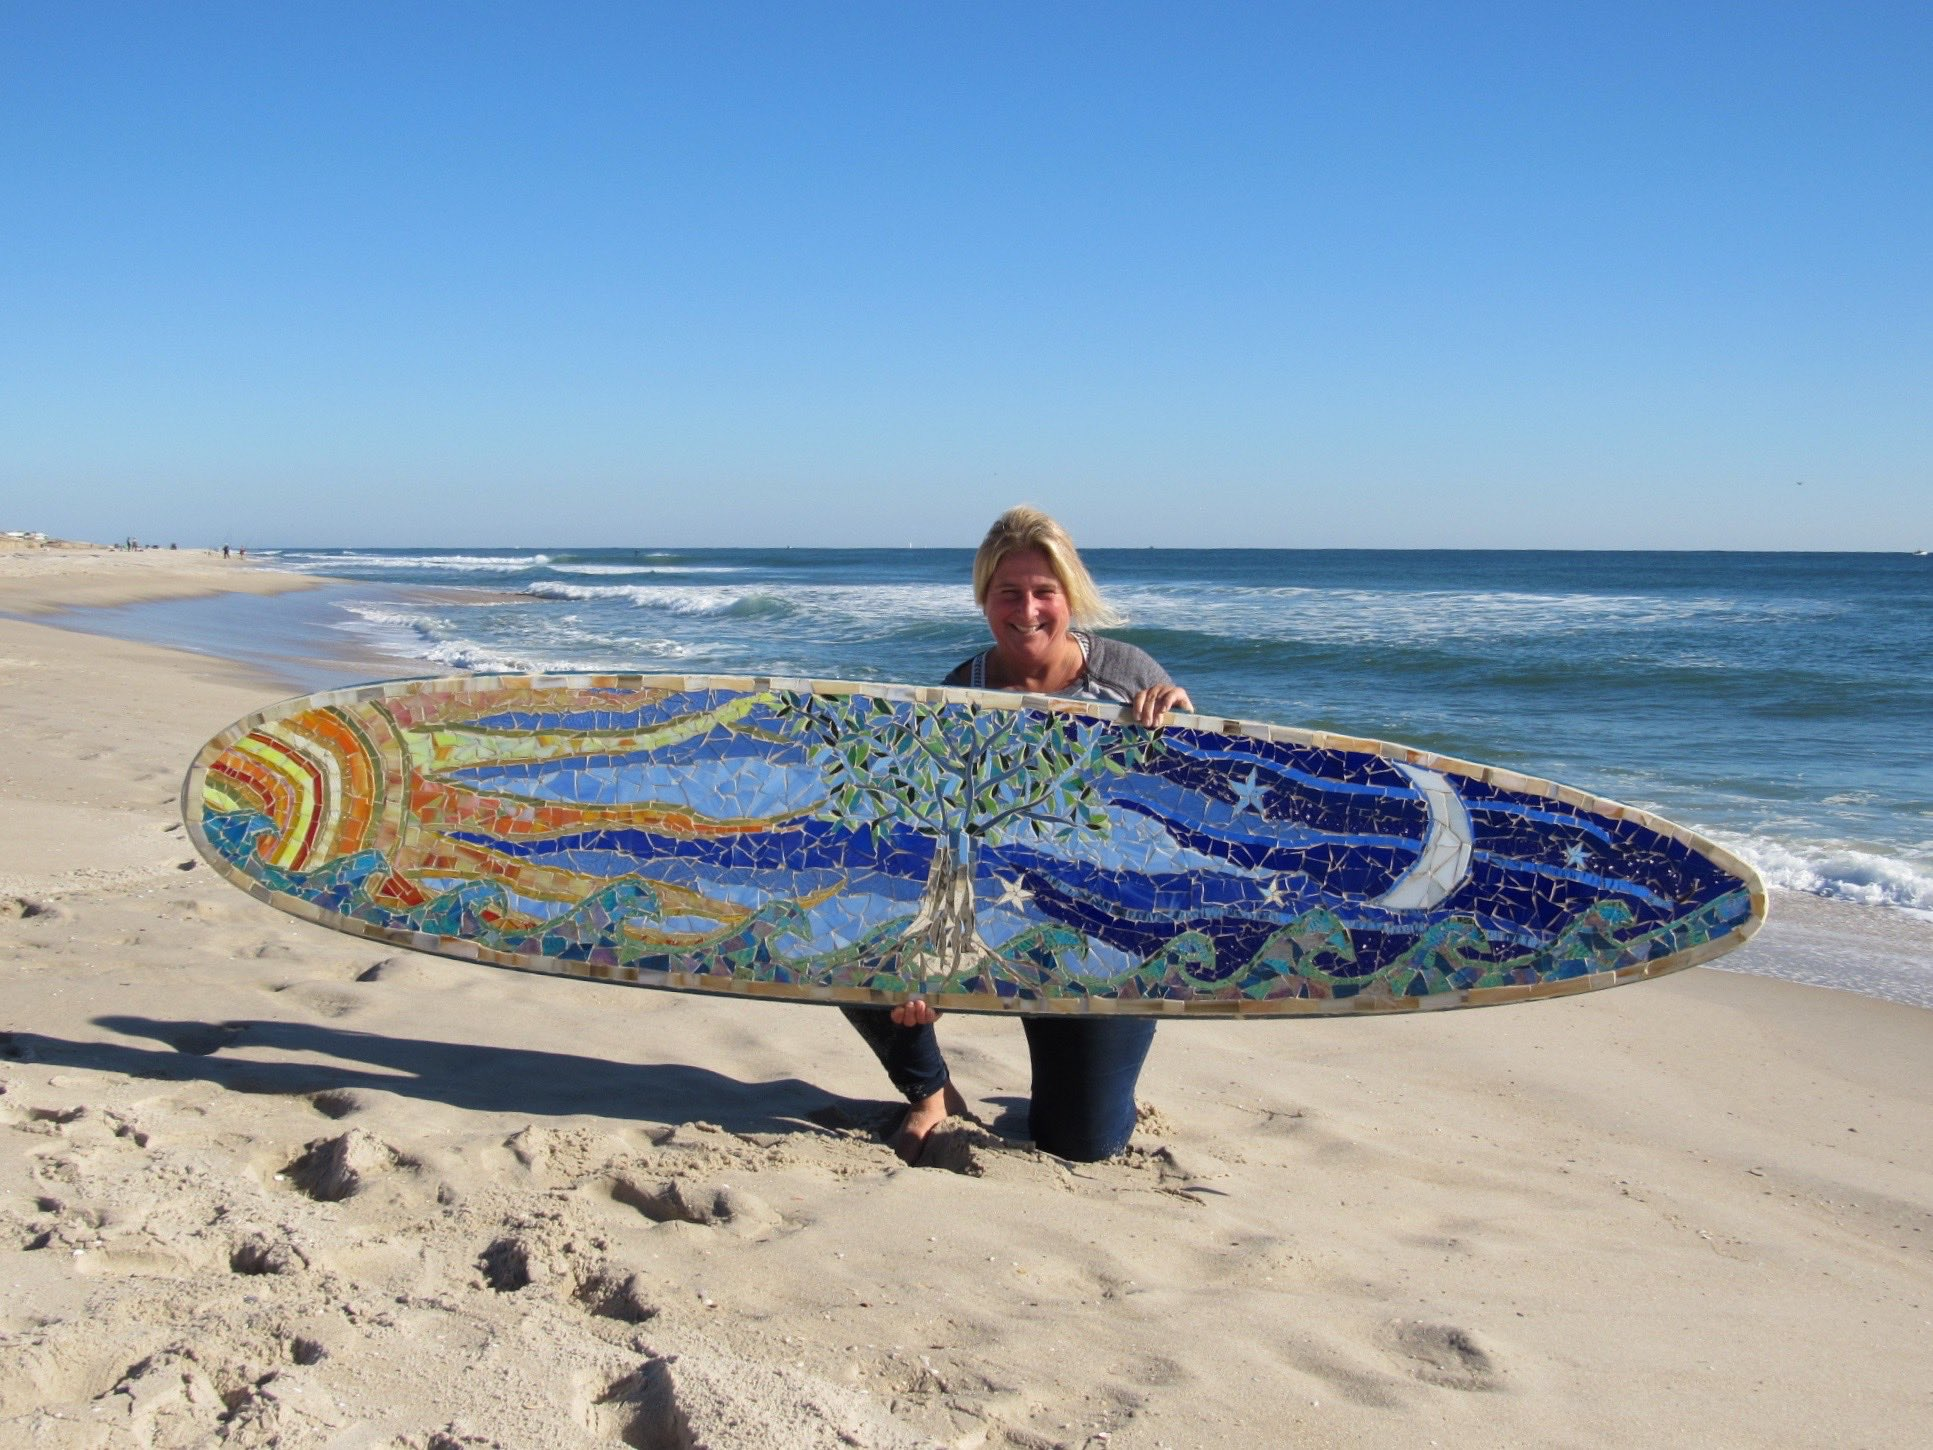 Custom Glass Mosaic Surfboard- Tree of Life. Artisan crafted by Mary Tantillo at SwellColors Glass Studio in Surf City, NJ.